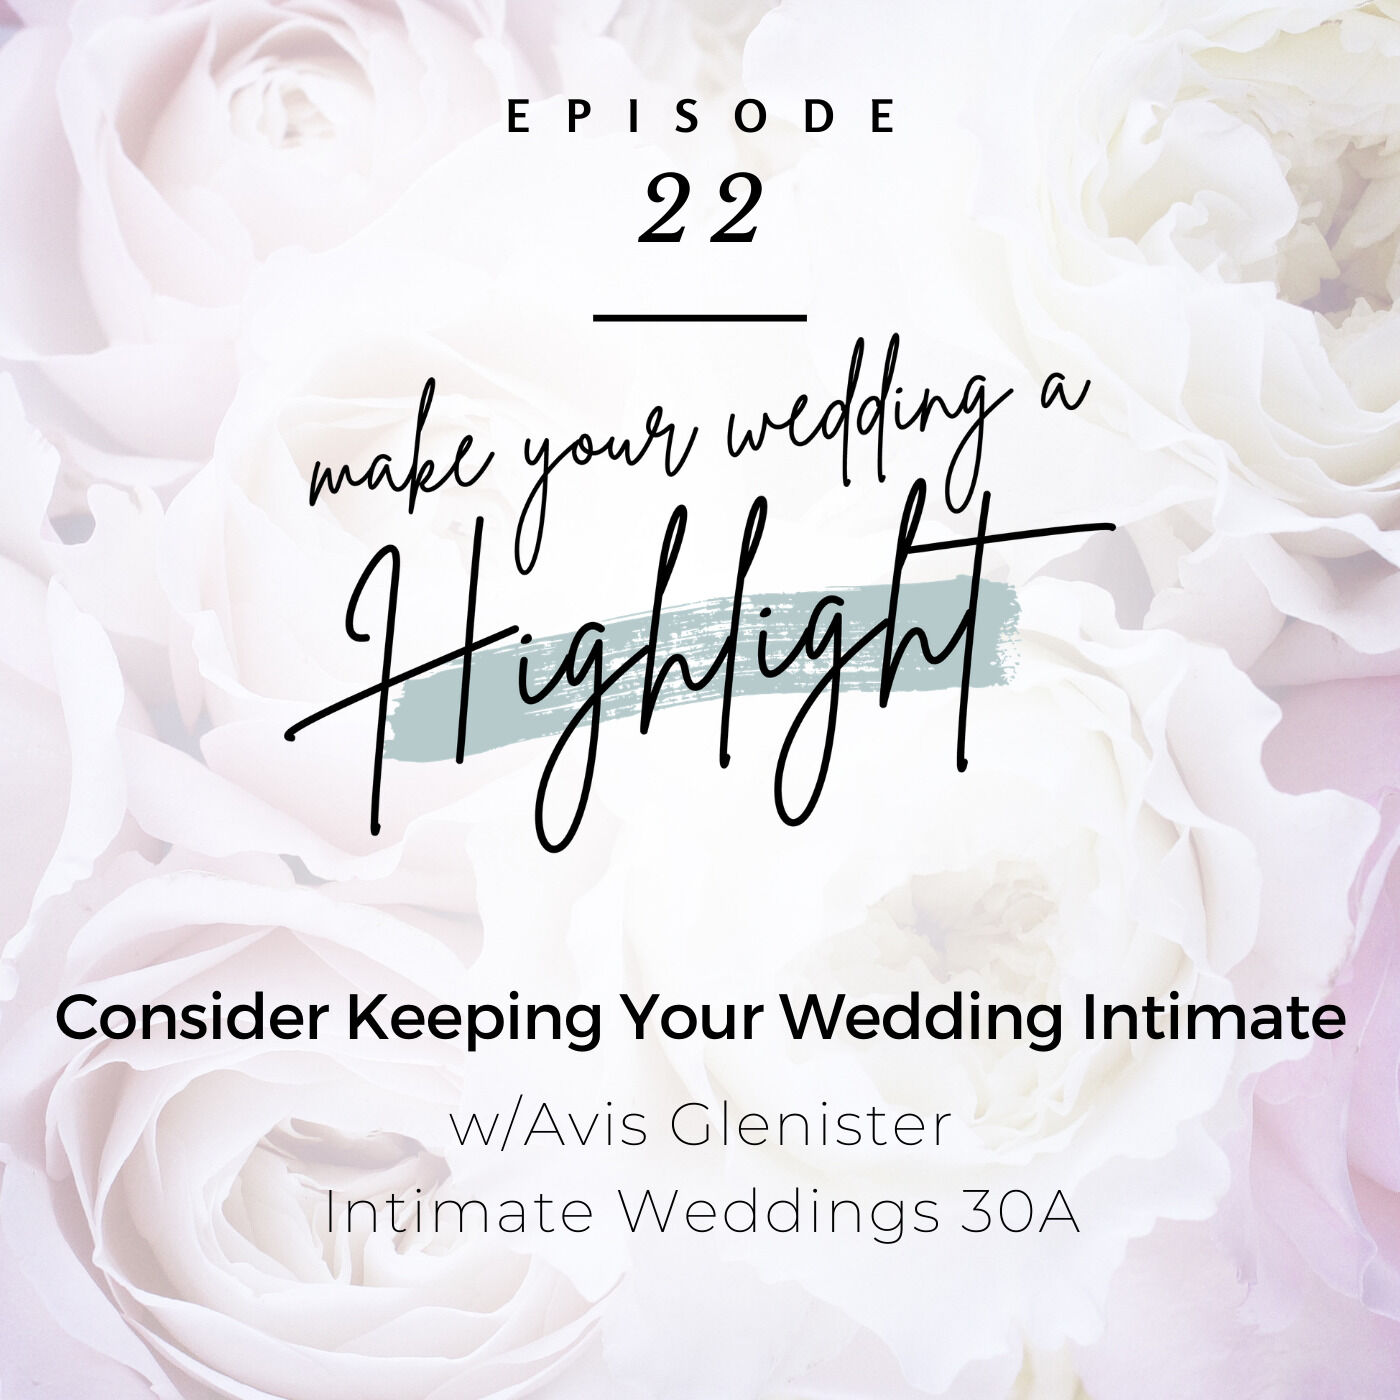 Consider Keeping Your Wedding Intimate!